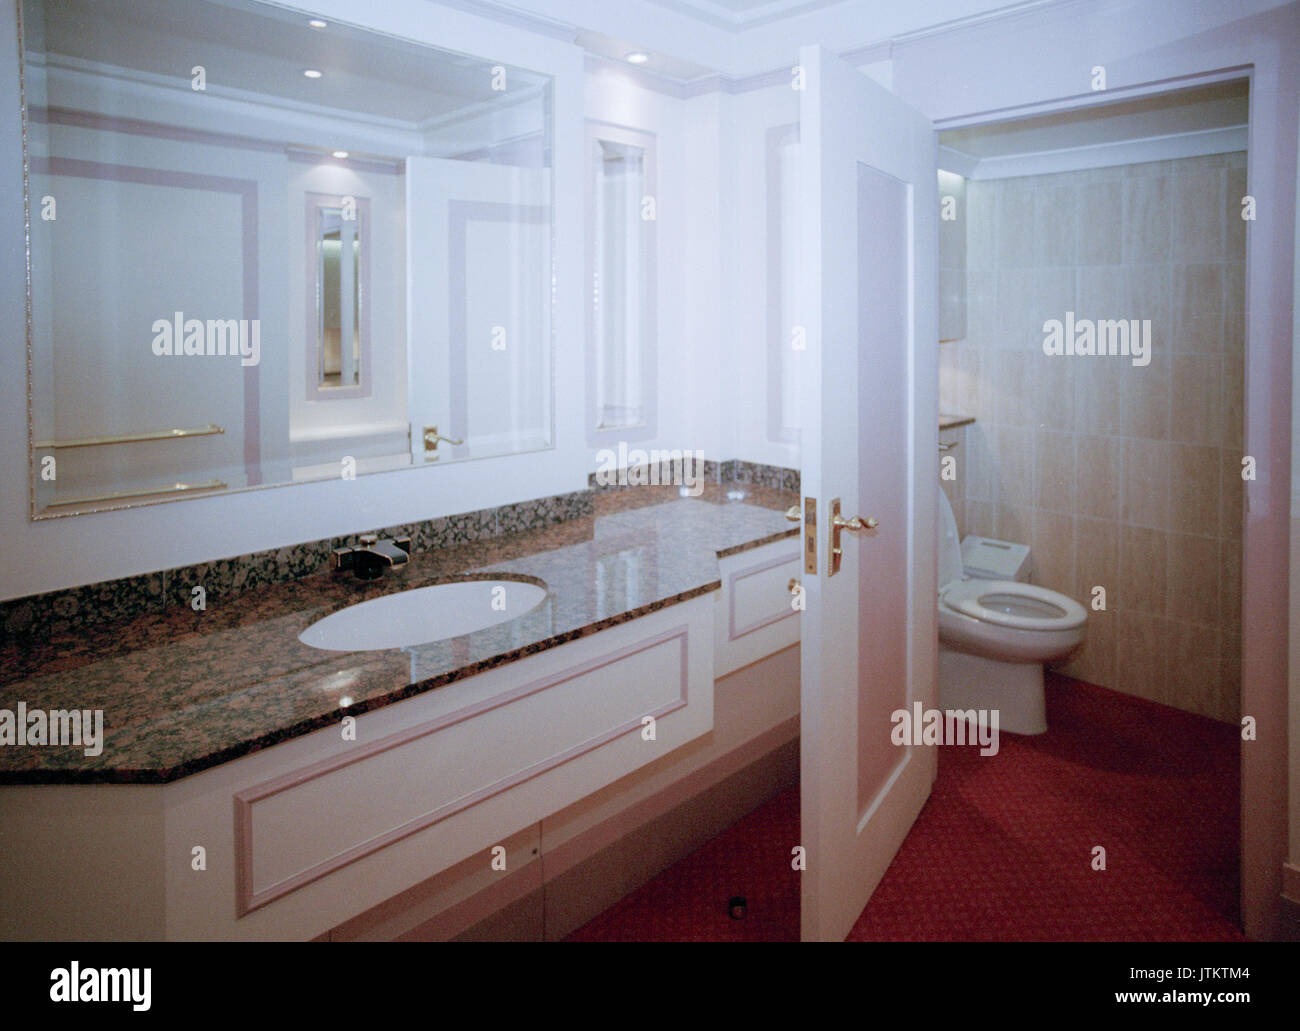 Rare Stock Photos Of The Interior Royal Bathrooms Toilet Inside Old Wembley Stadium Twin Towers Taken On A Private Tour 19th March 1999